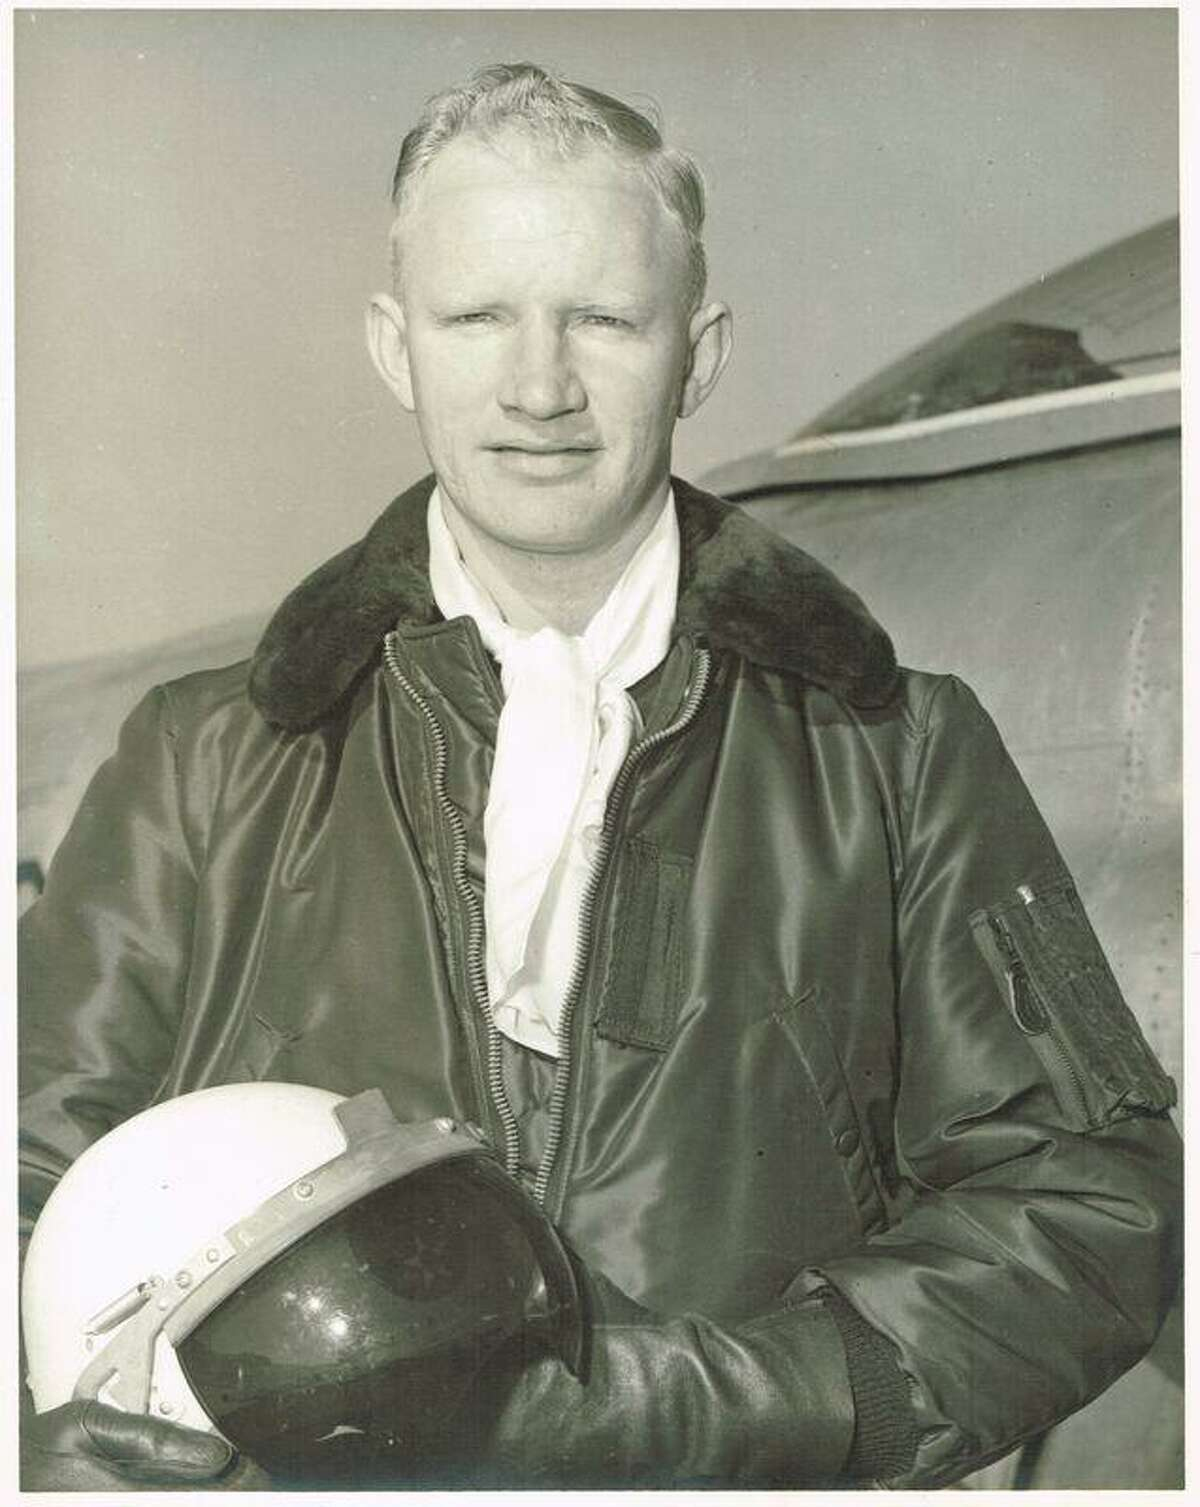 Capt. Herod was a member of the 182nd Fighter Squadron, of the 149th Fighter Wing, of the Texas Air National Guard, based at Kelly Air Force Base, in San Antonio, Texas.